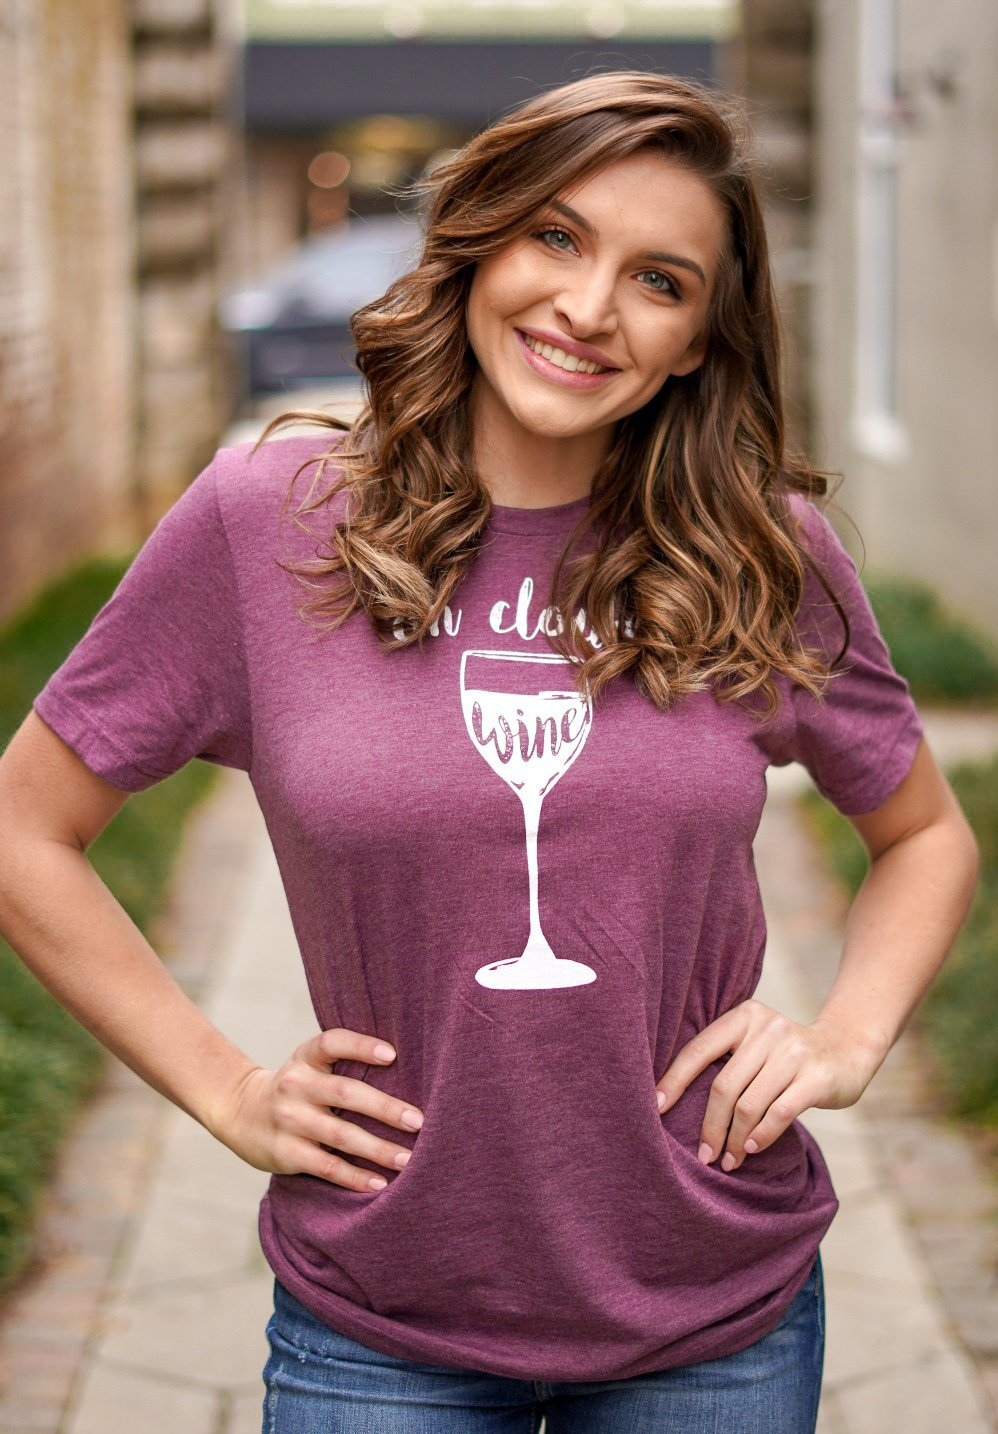 On Cloud Wine Tee